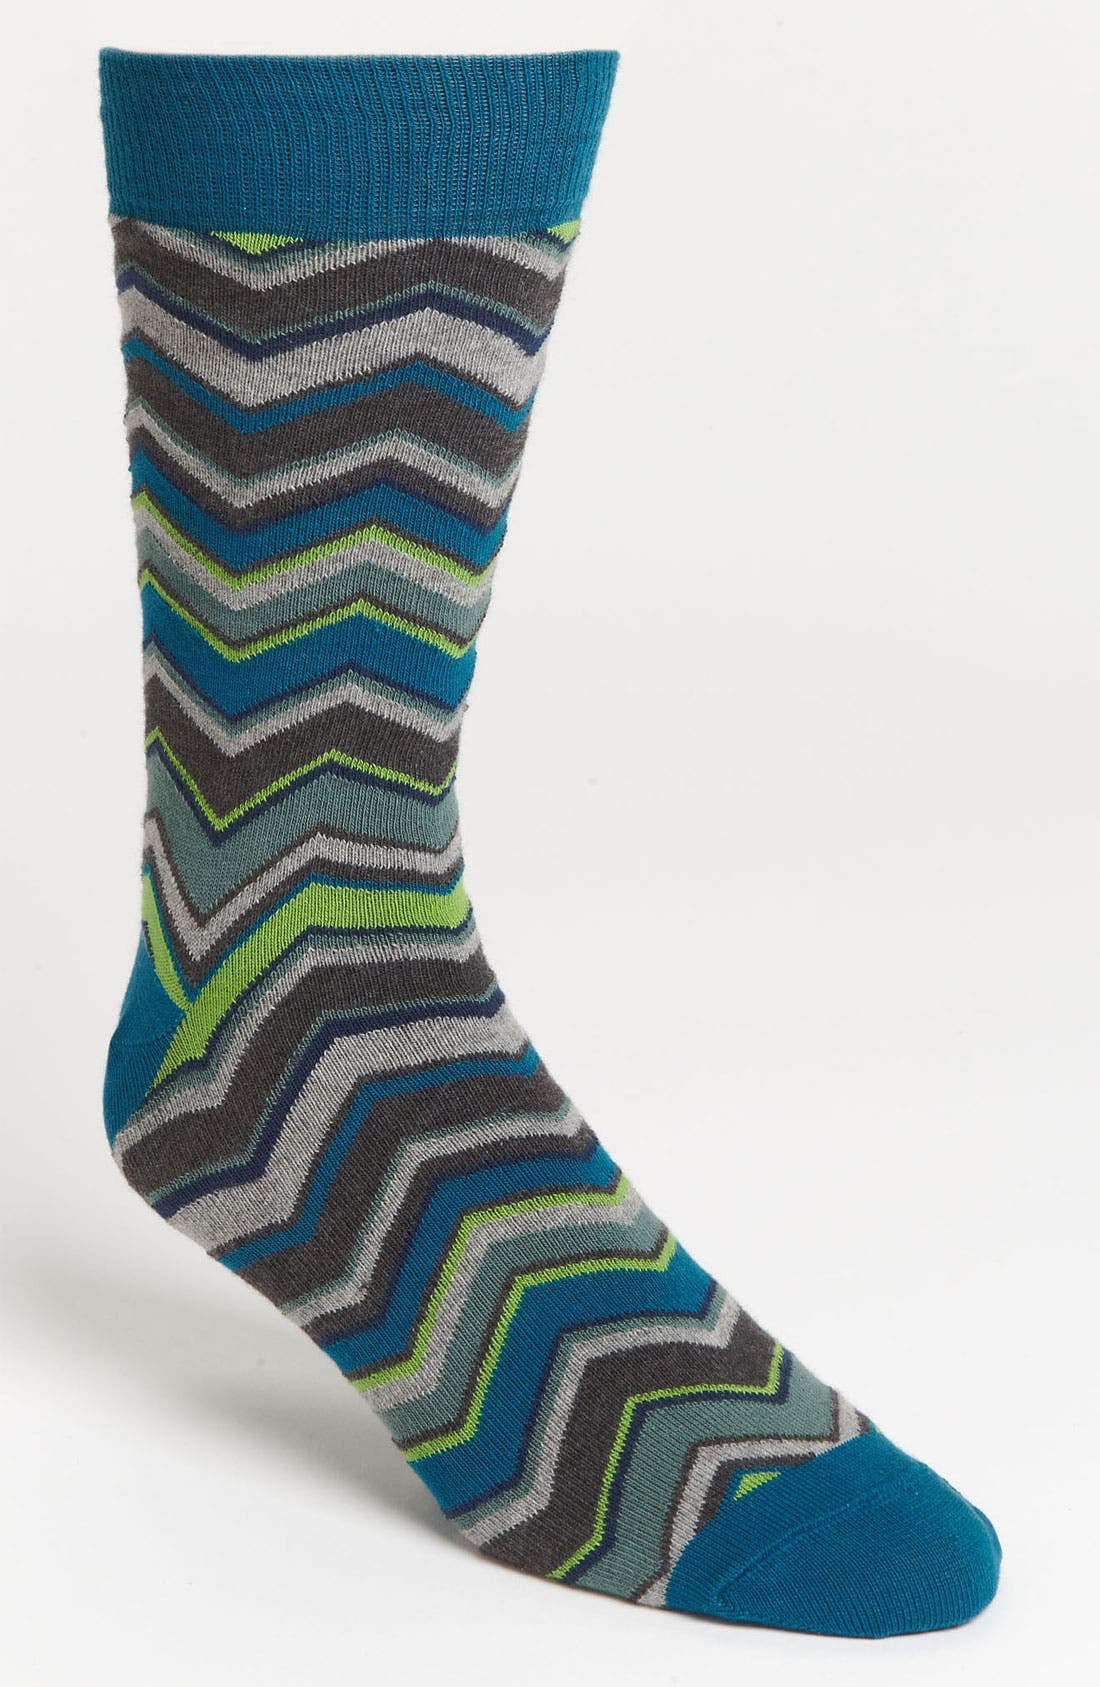 Alternate Image 1 Selected - Pact Zigzag Socks